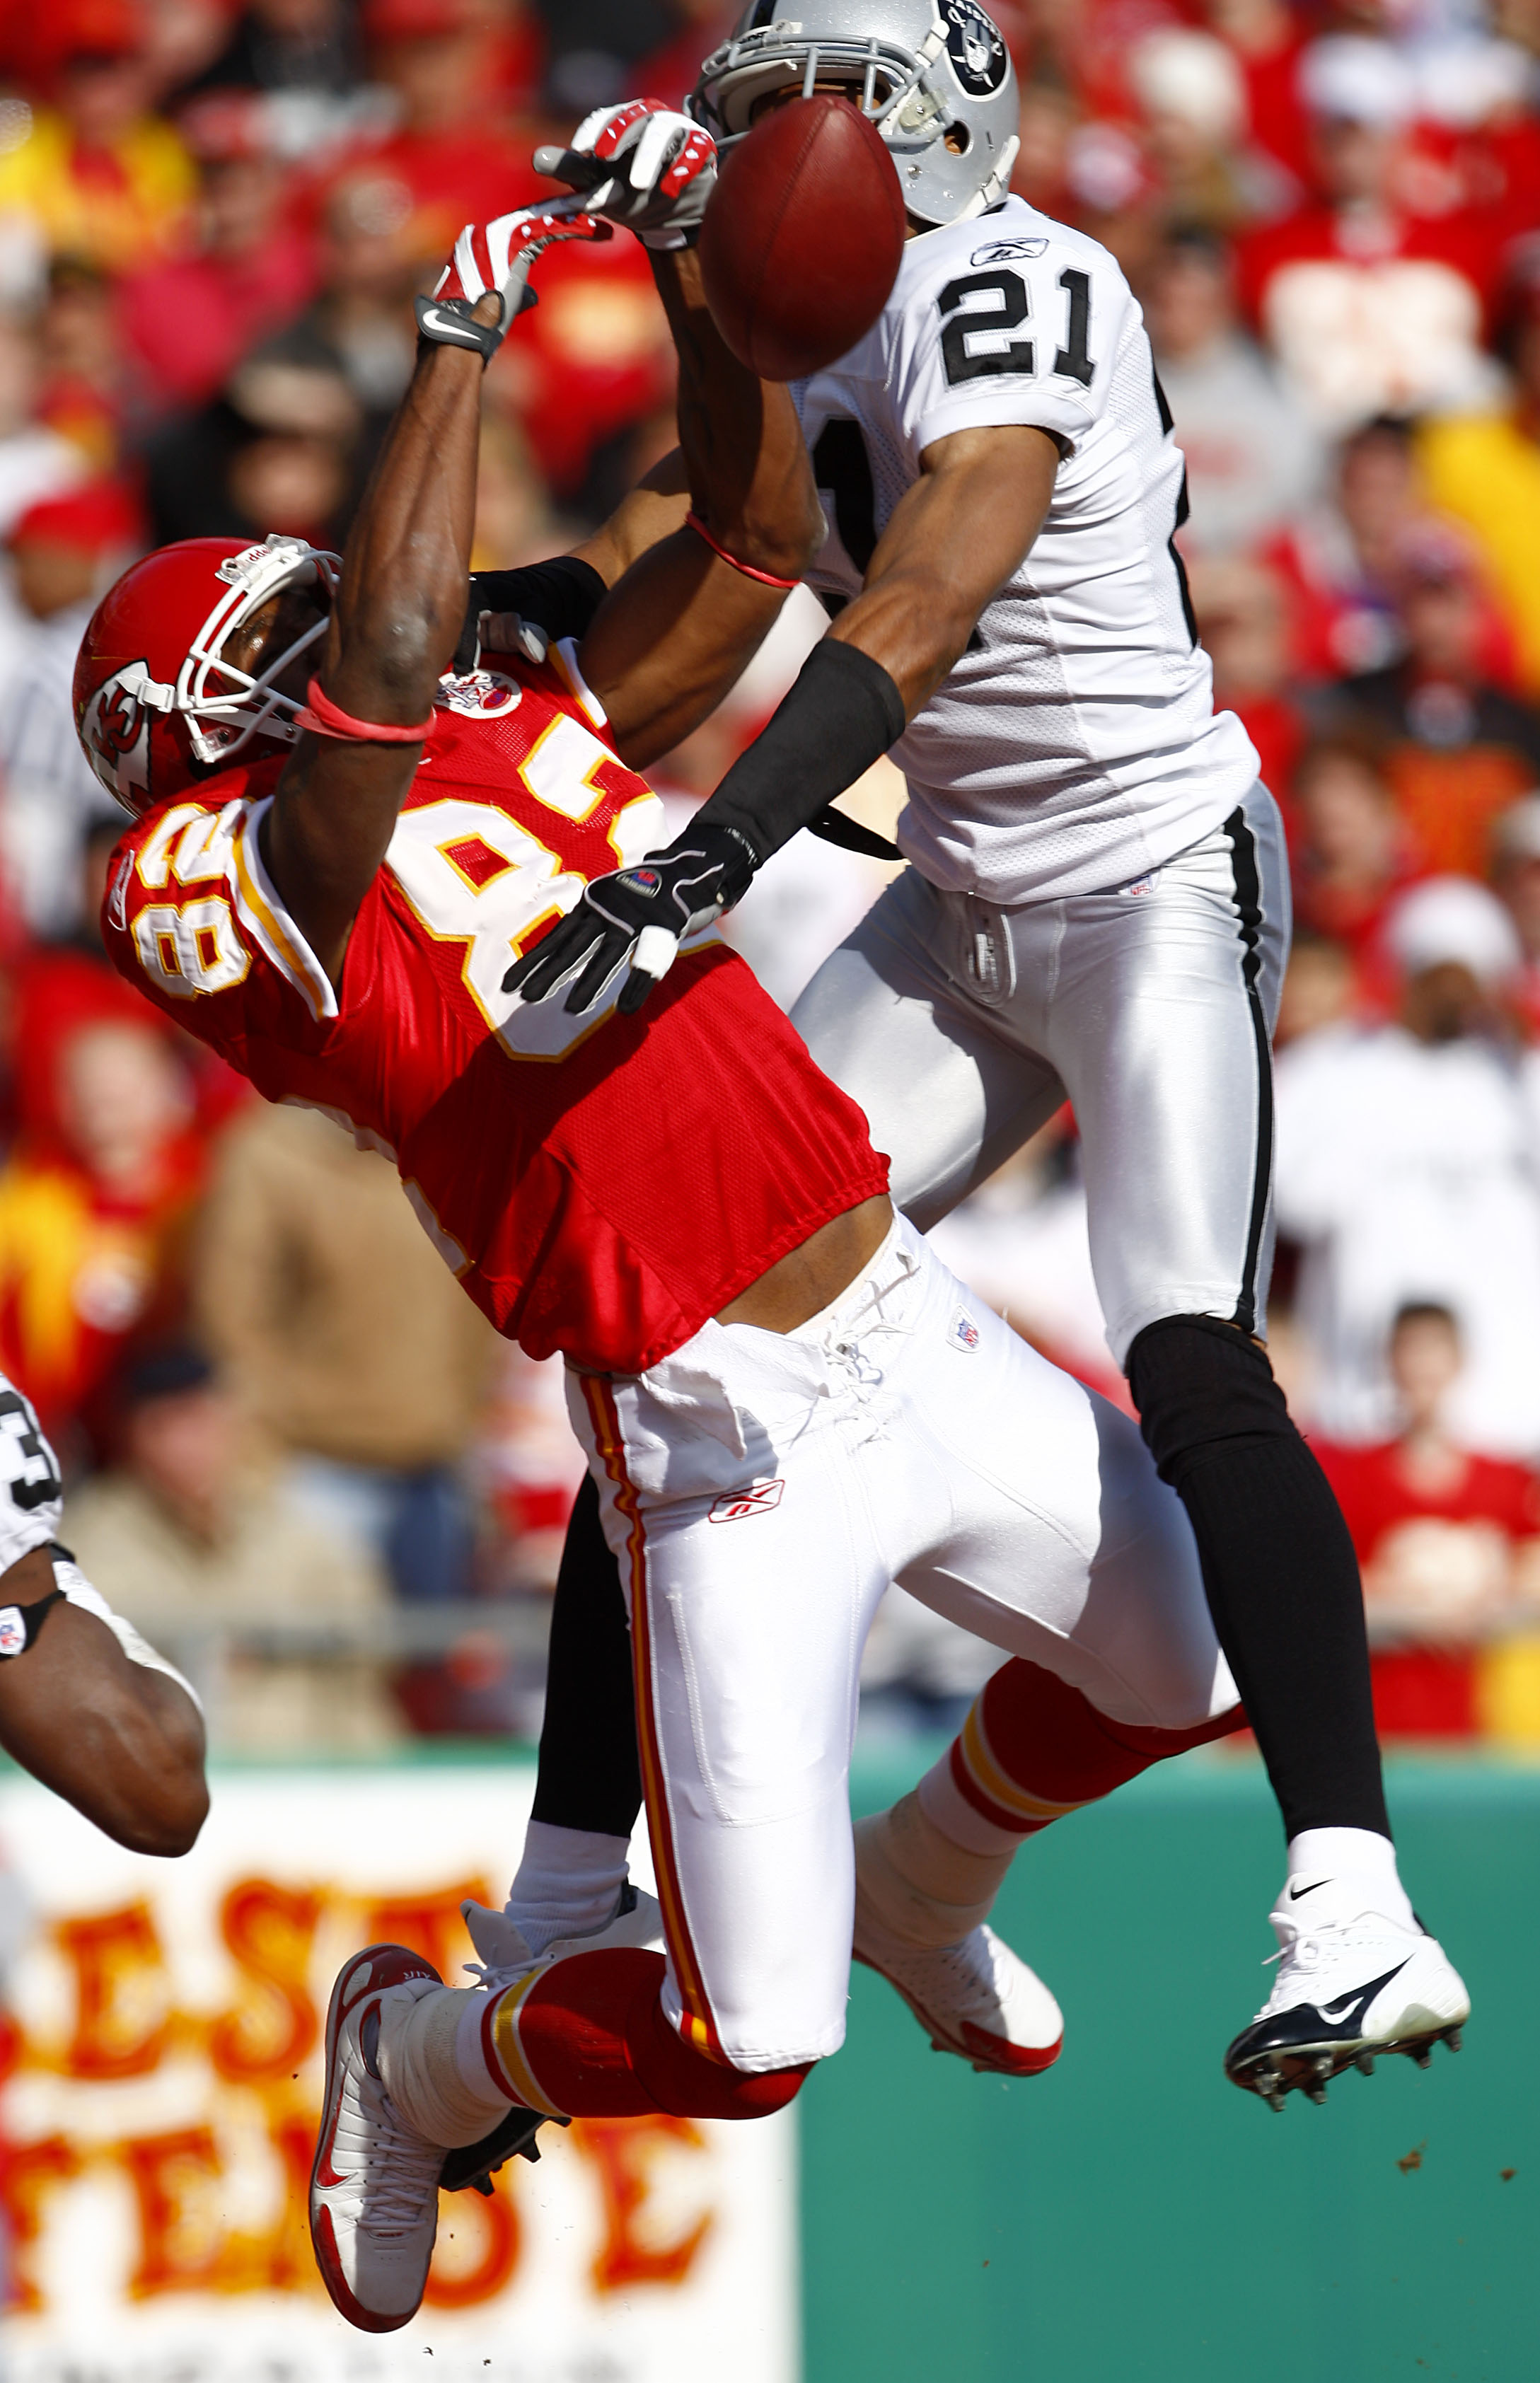 If Nnamdi Asomugha can play, covering Dwayne Bowe will be much easier.